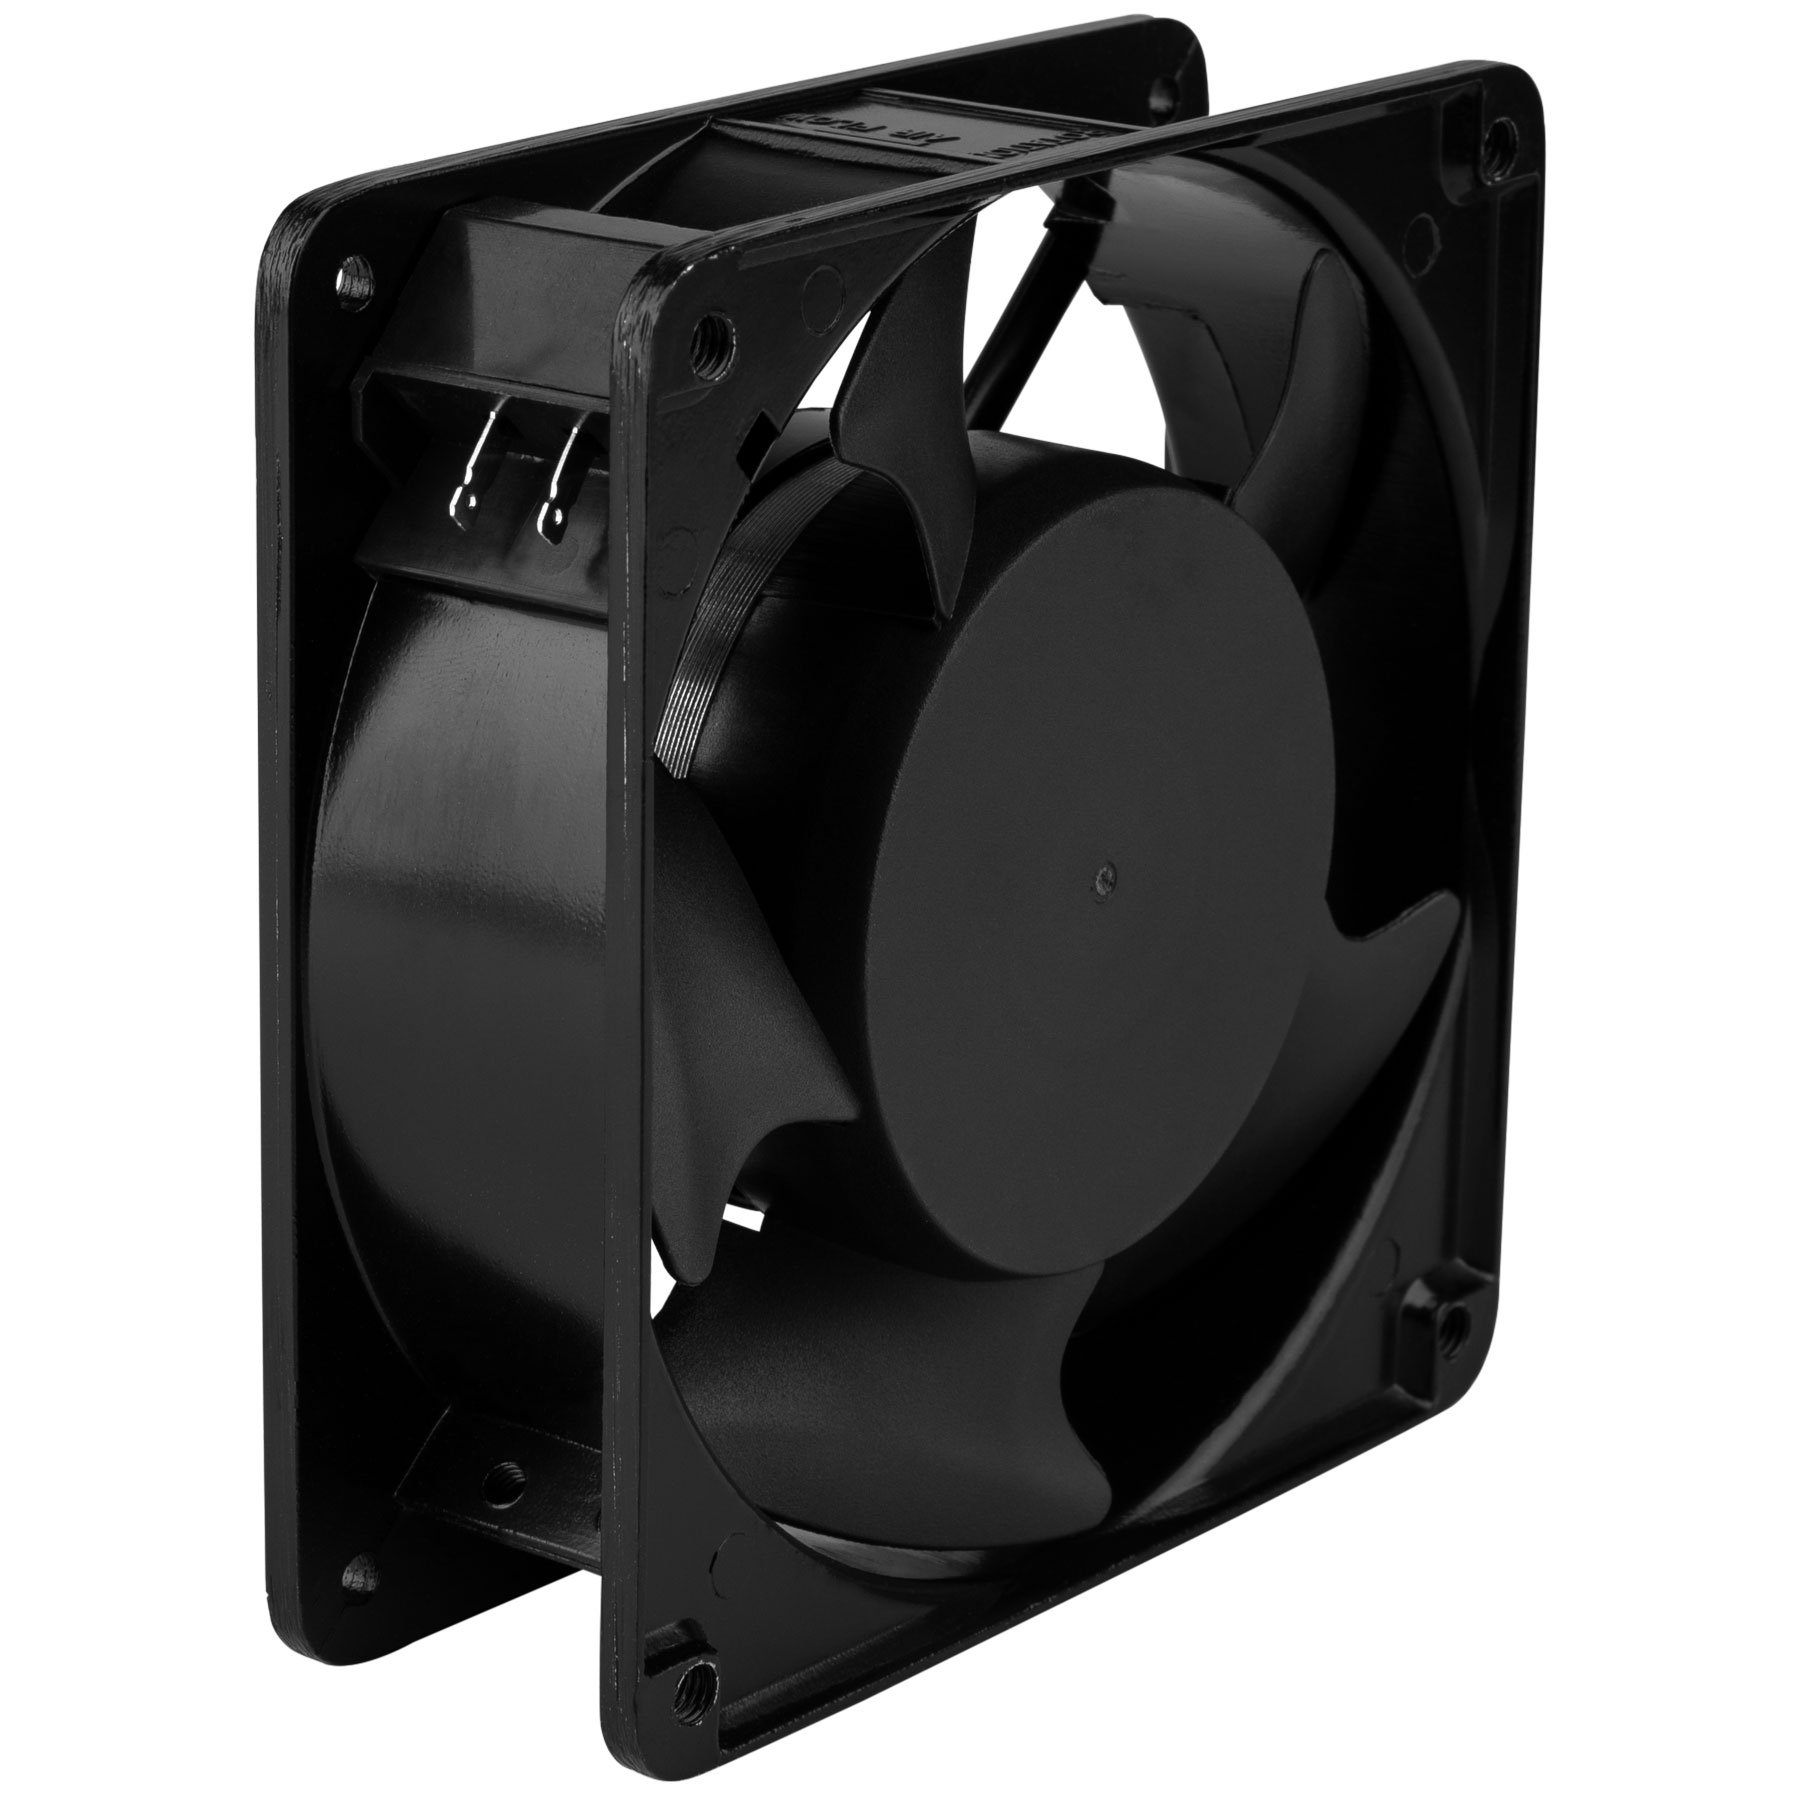 Parts Express Muffin Style Axial Cooling Fan 120 VAC 120 x 120 x 38mm 100 CFM by Parts Express (Image #3)